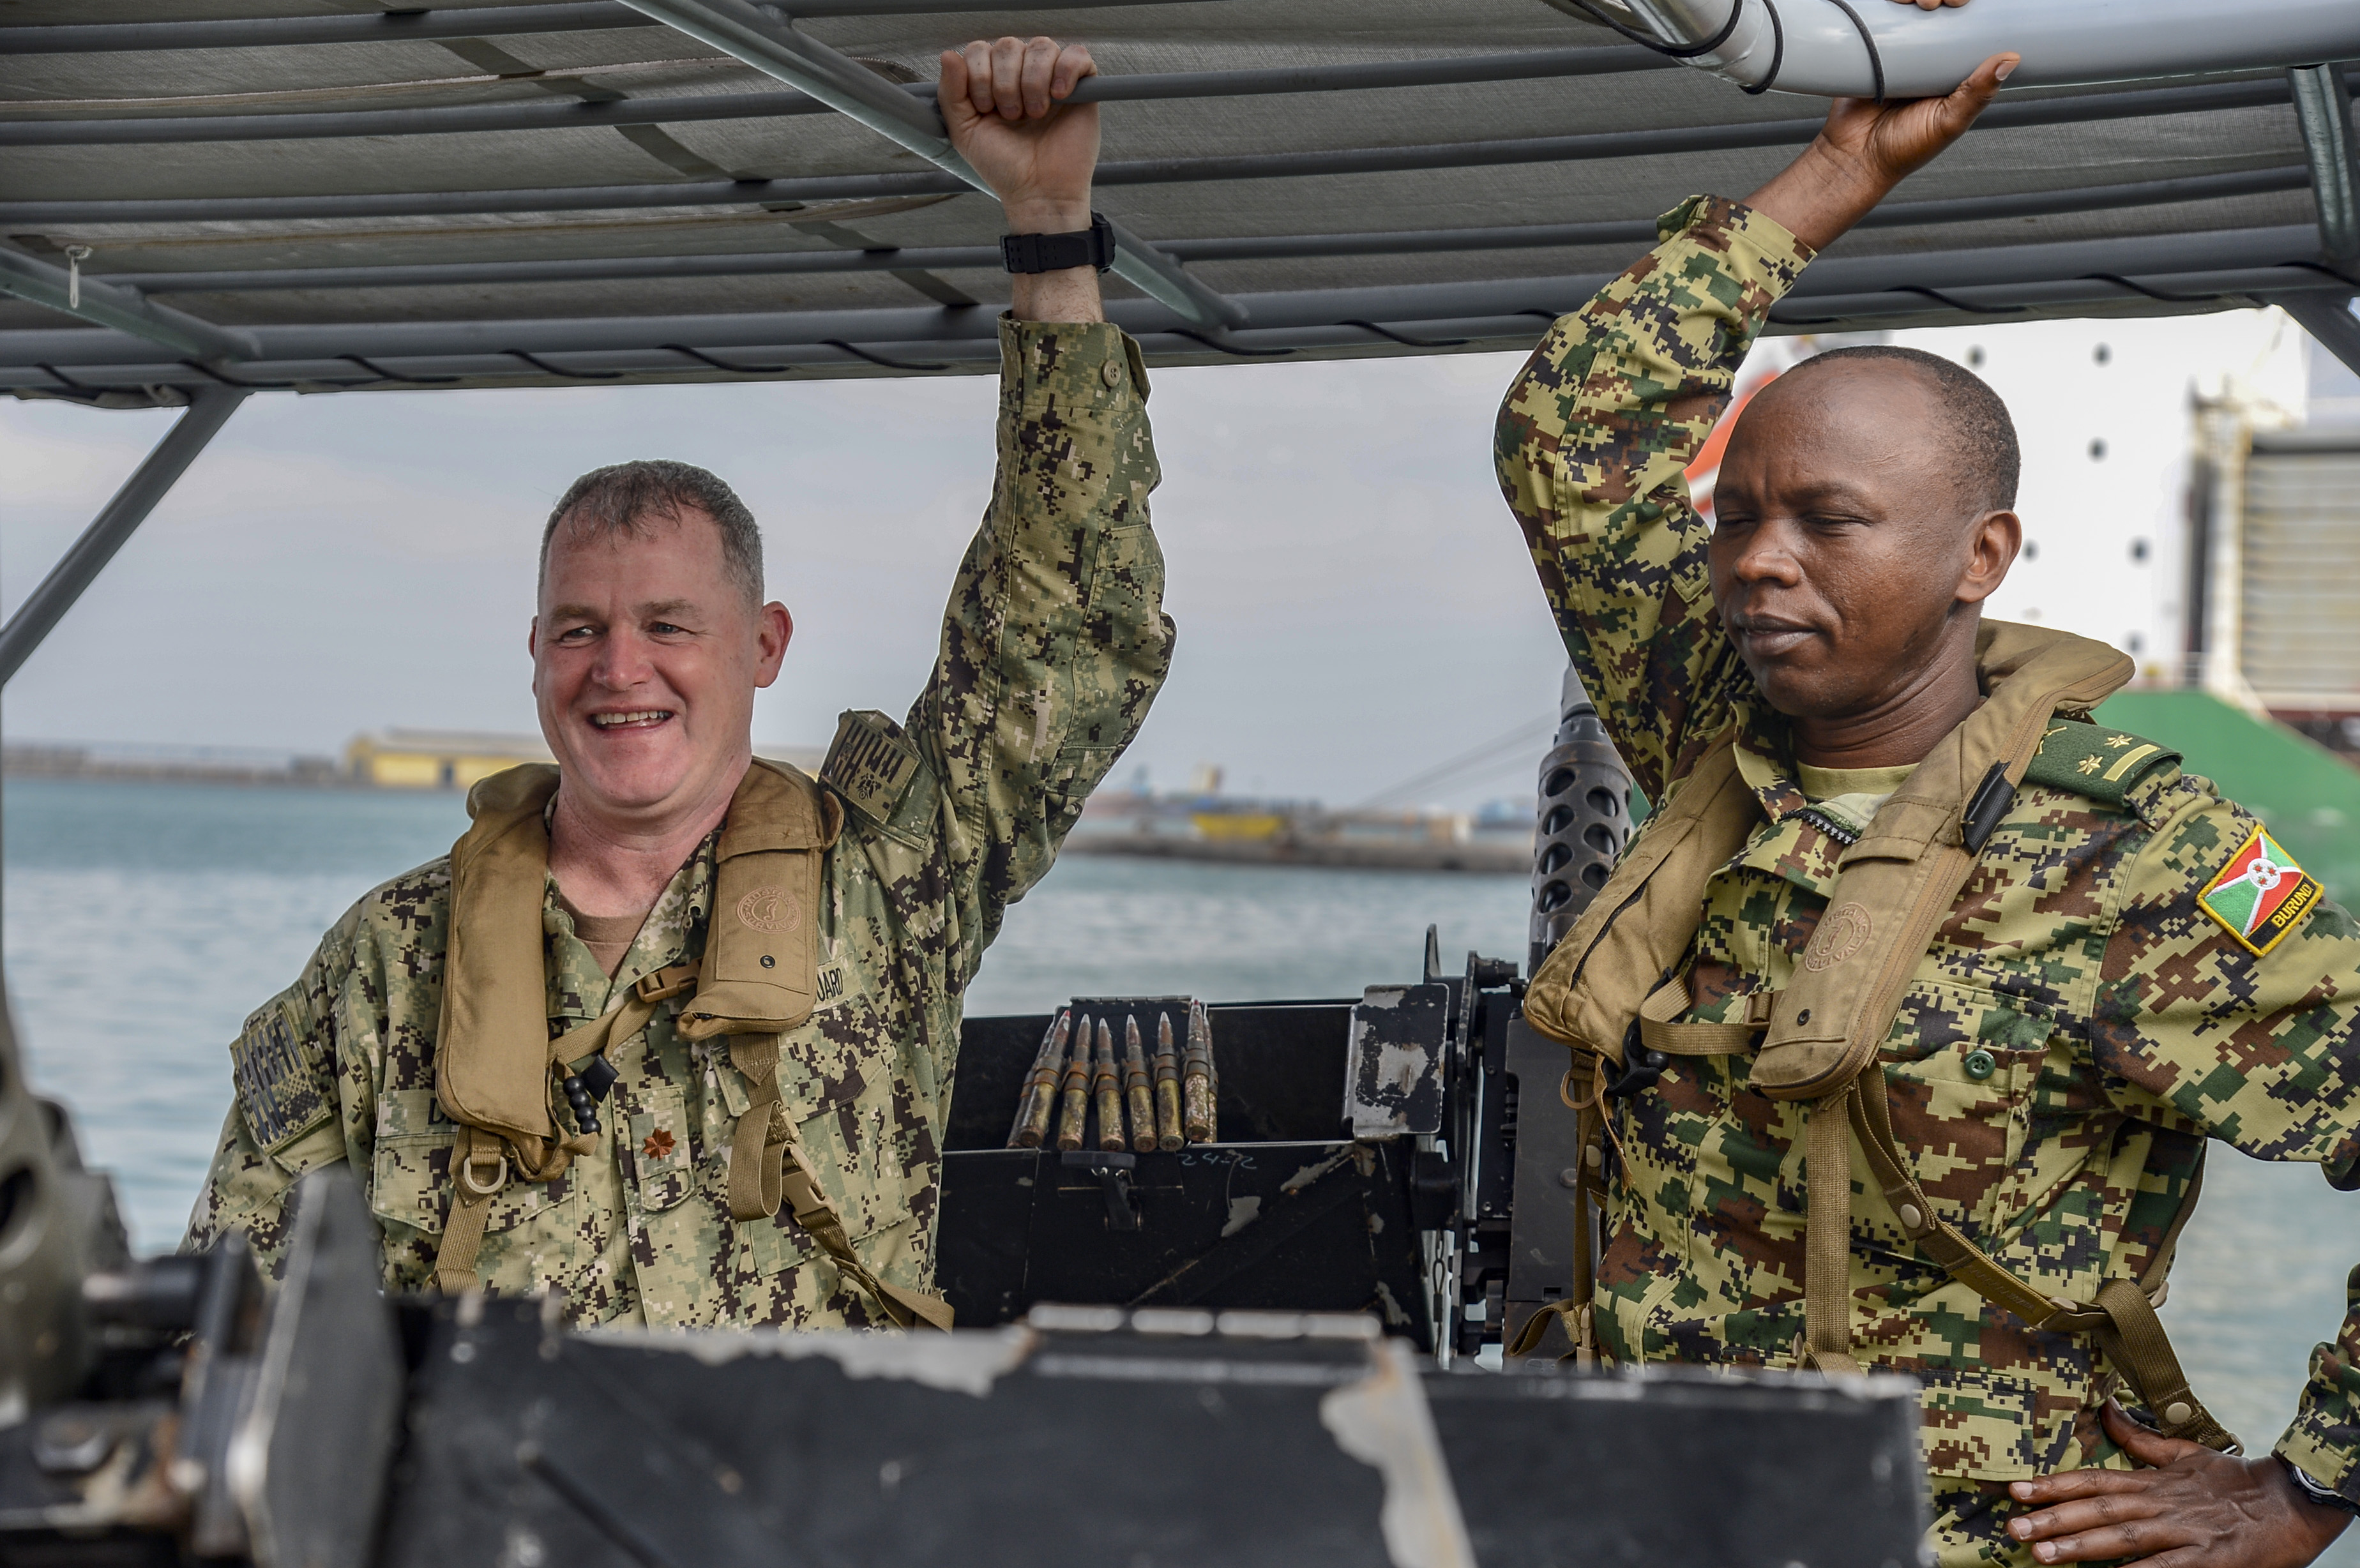 U.S. Coast Guard Lt. Cmdr. Patrick Dillon, deputy commander of Coastal Riverine Squadron (CRS) 8, and Burundi Army Lt. Col. Desire Manirakiza, a foreign liaison officer (FLO) with Combined Joint Task Force-Horn of Africa, prepare to embark for maritime security operations (MSO) at the Port of Djibouti, Oct. 23, 2018. CJTF-HOA FLOs observed the operations to better understand MSO and the CRS-8 mission. (U.S. Navy photo by Mass Communication Specialist 2nd Class Timothy M. Ahearn)